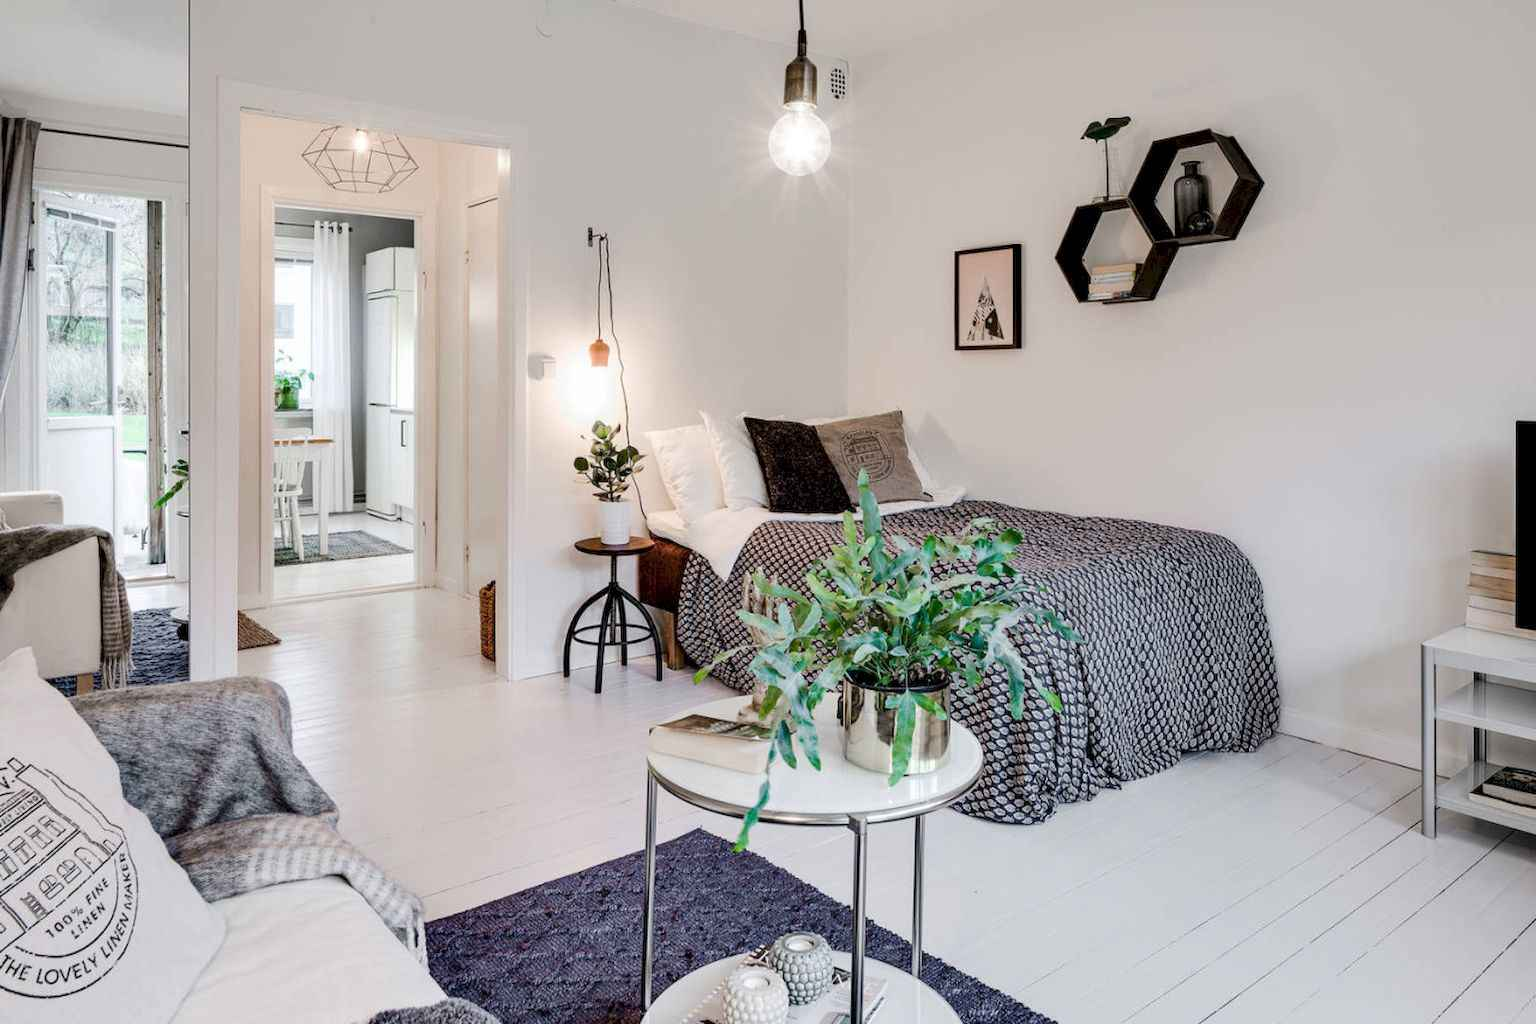 Cool small apartment decorating ideas on a budget (11)